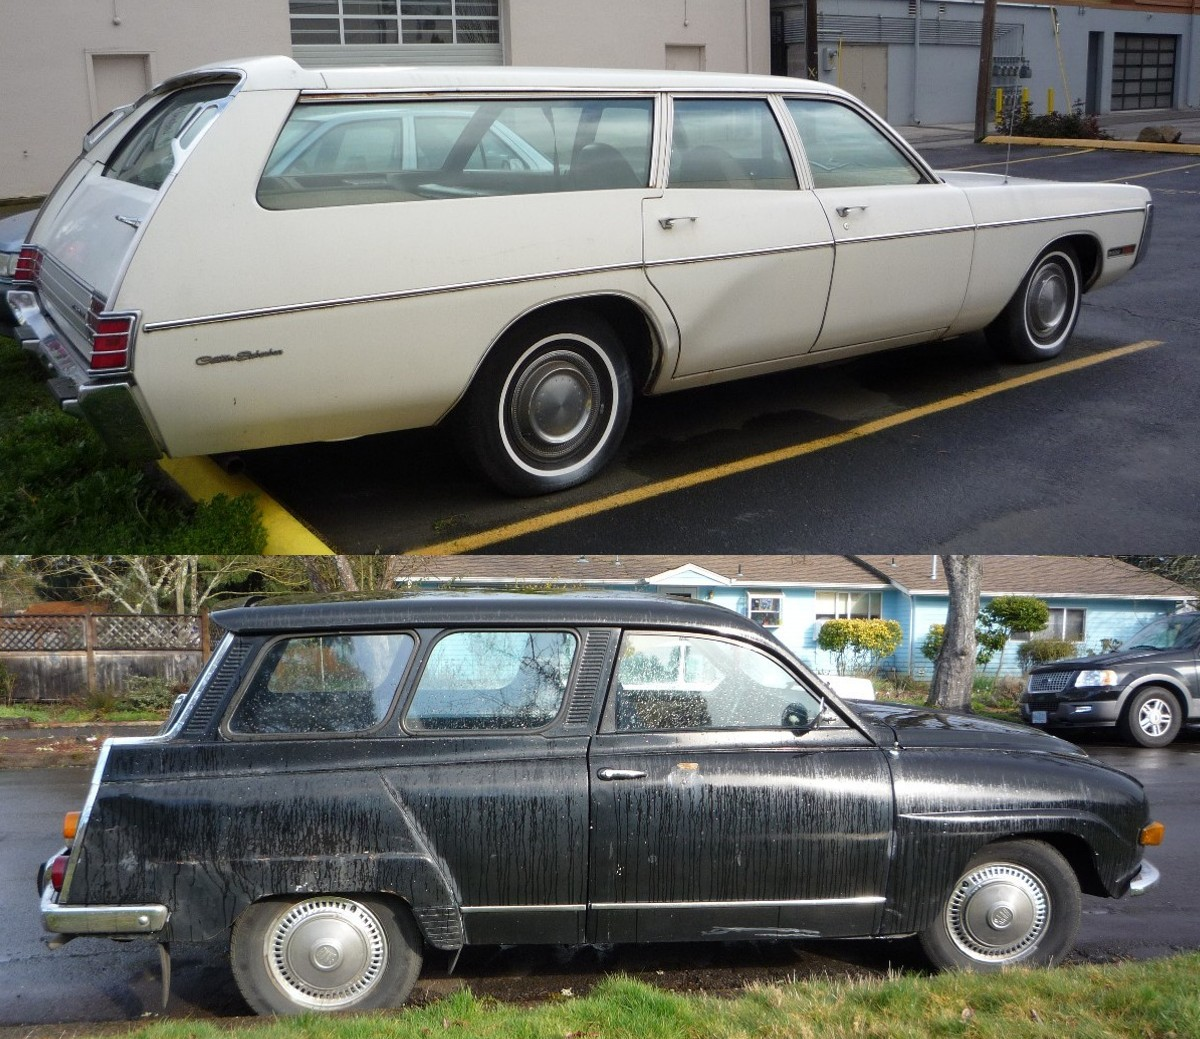 Third Row Seating Jeep >> Curbside Classic: 1972 Plymouth Fury and Saab 95